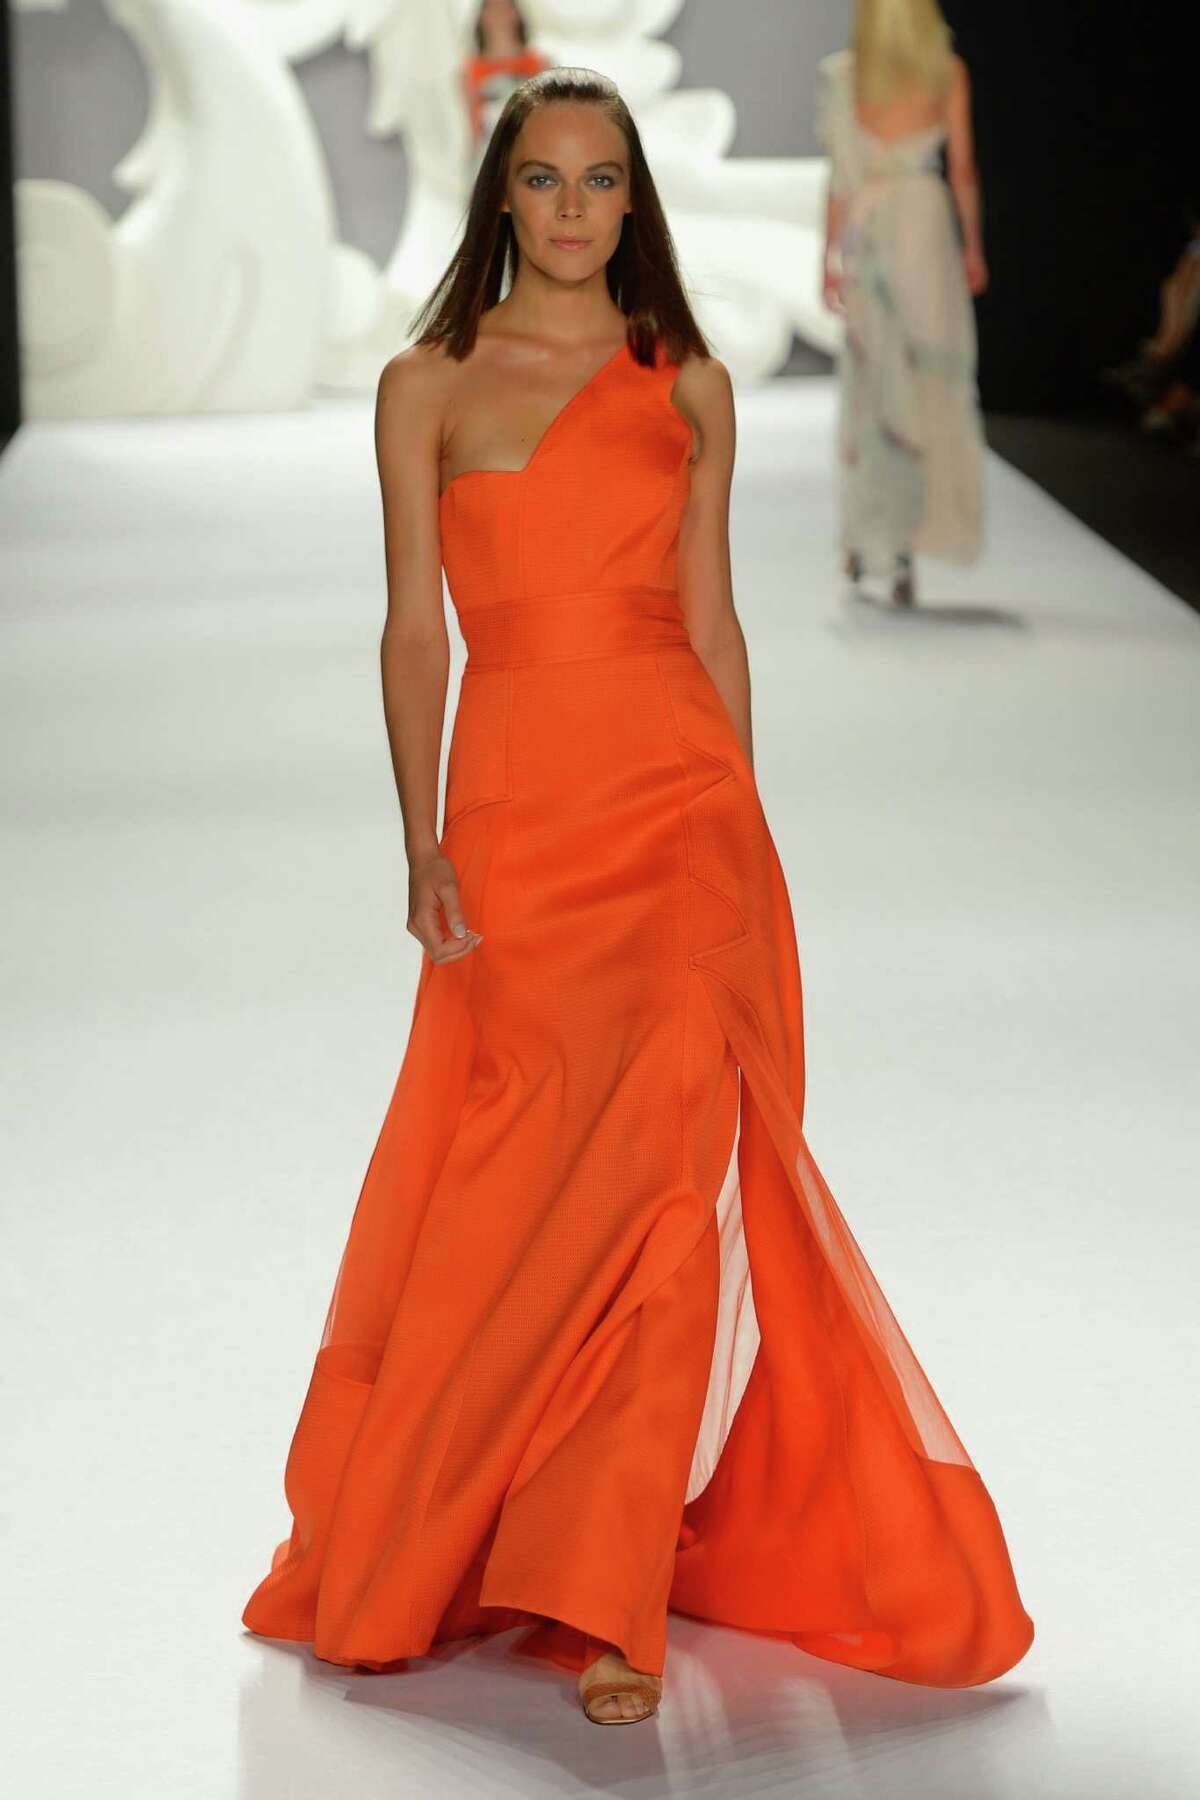 A model walks the runway at the Carolina Herrera Spring 2013 fashion show during Mercedes-Benz Fashion Week on September 10, 2012 in New York City.